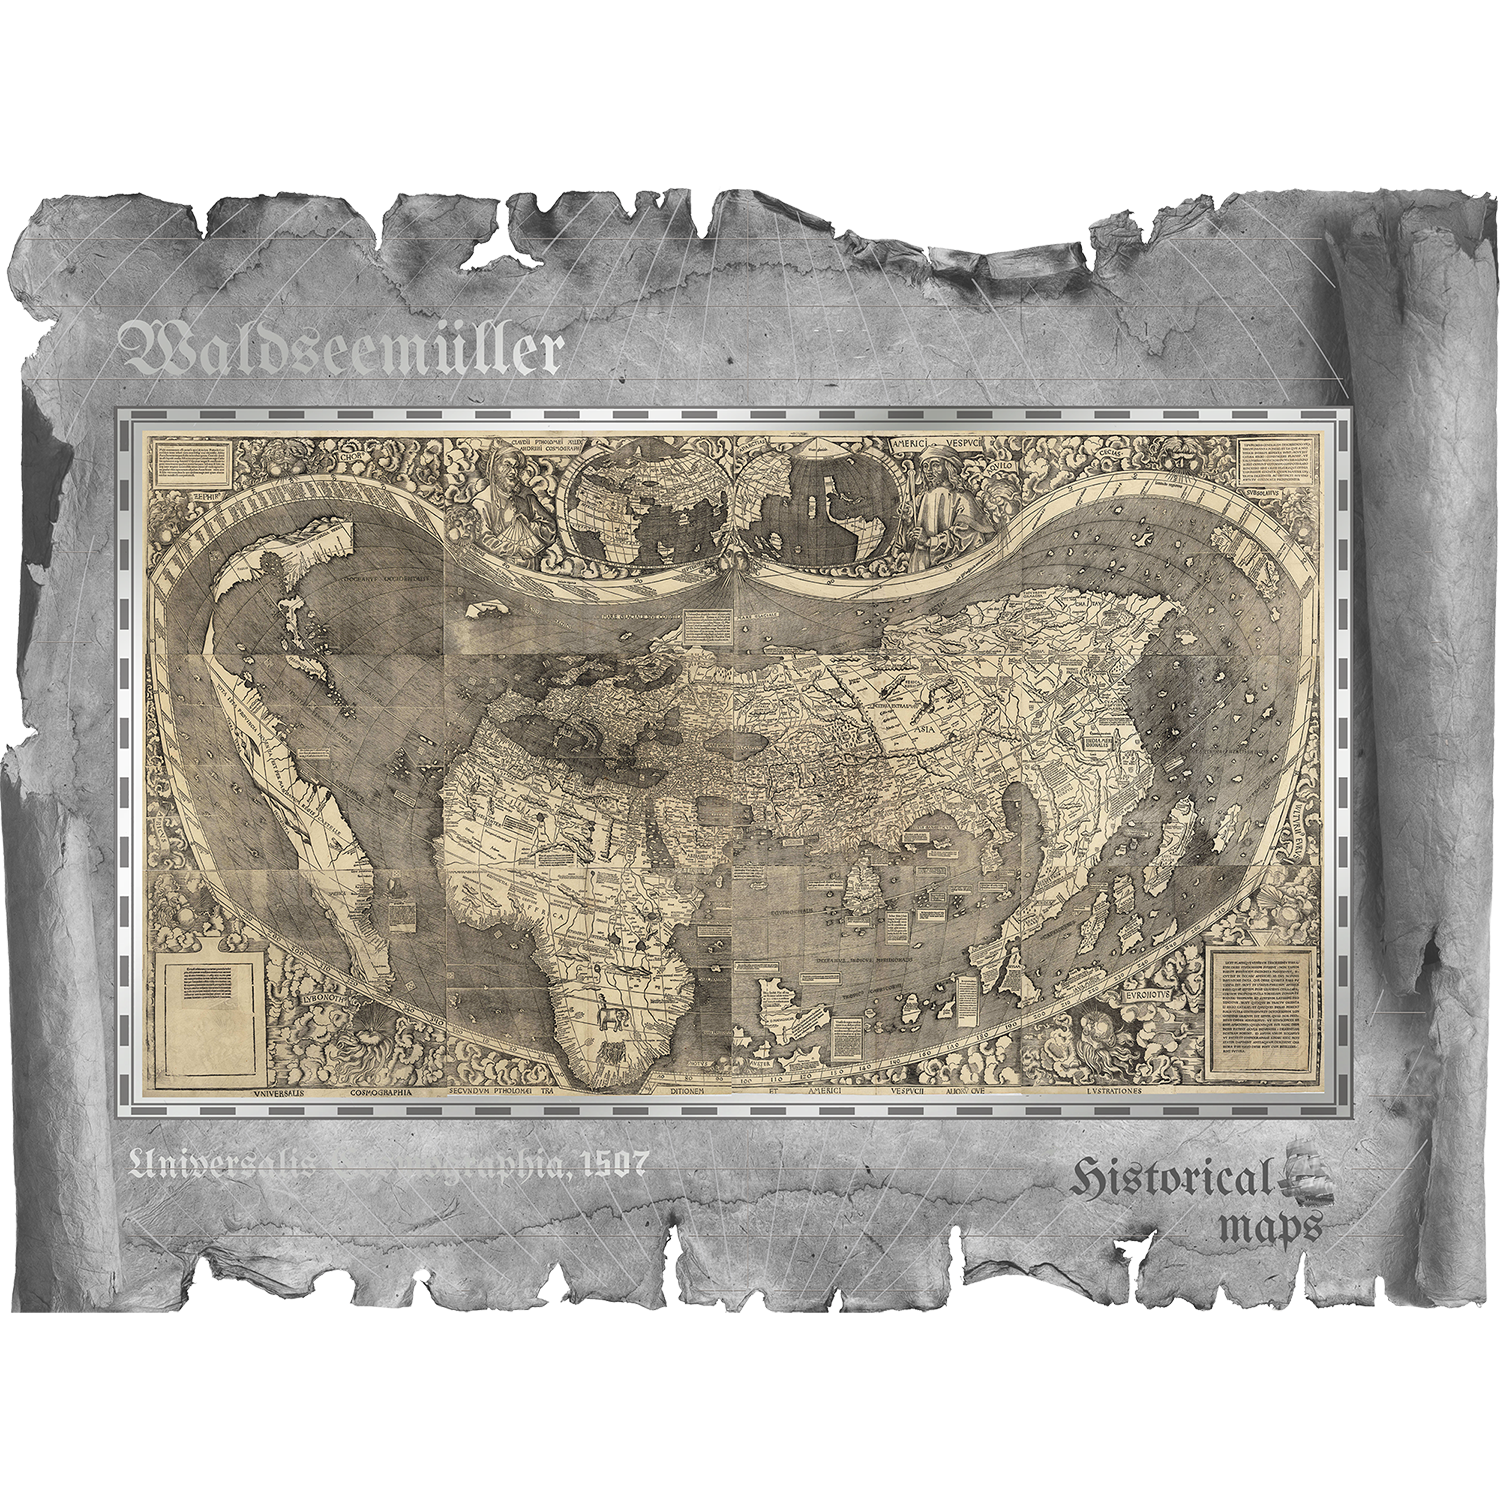 waldseemueller historical maps america amerika silver coin banknote CIT coin invest smartminting